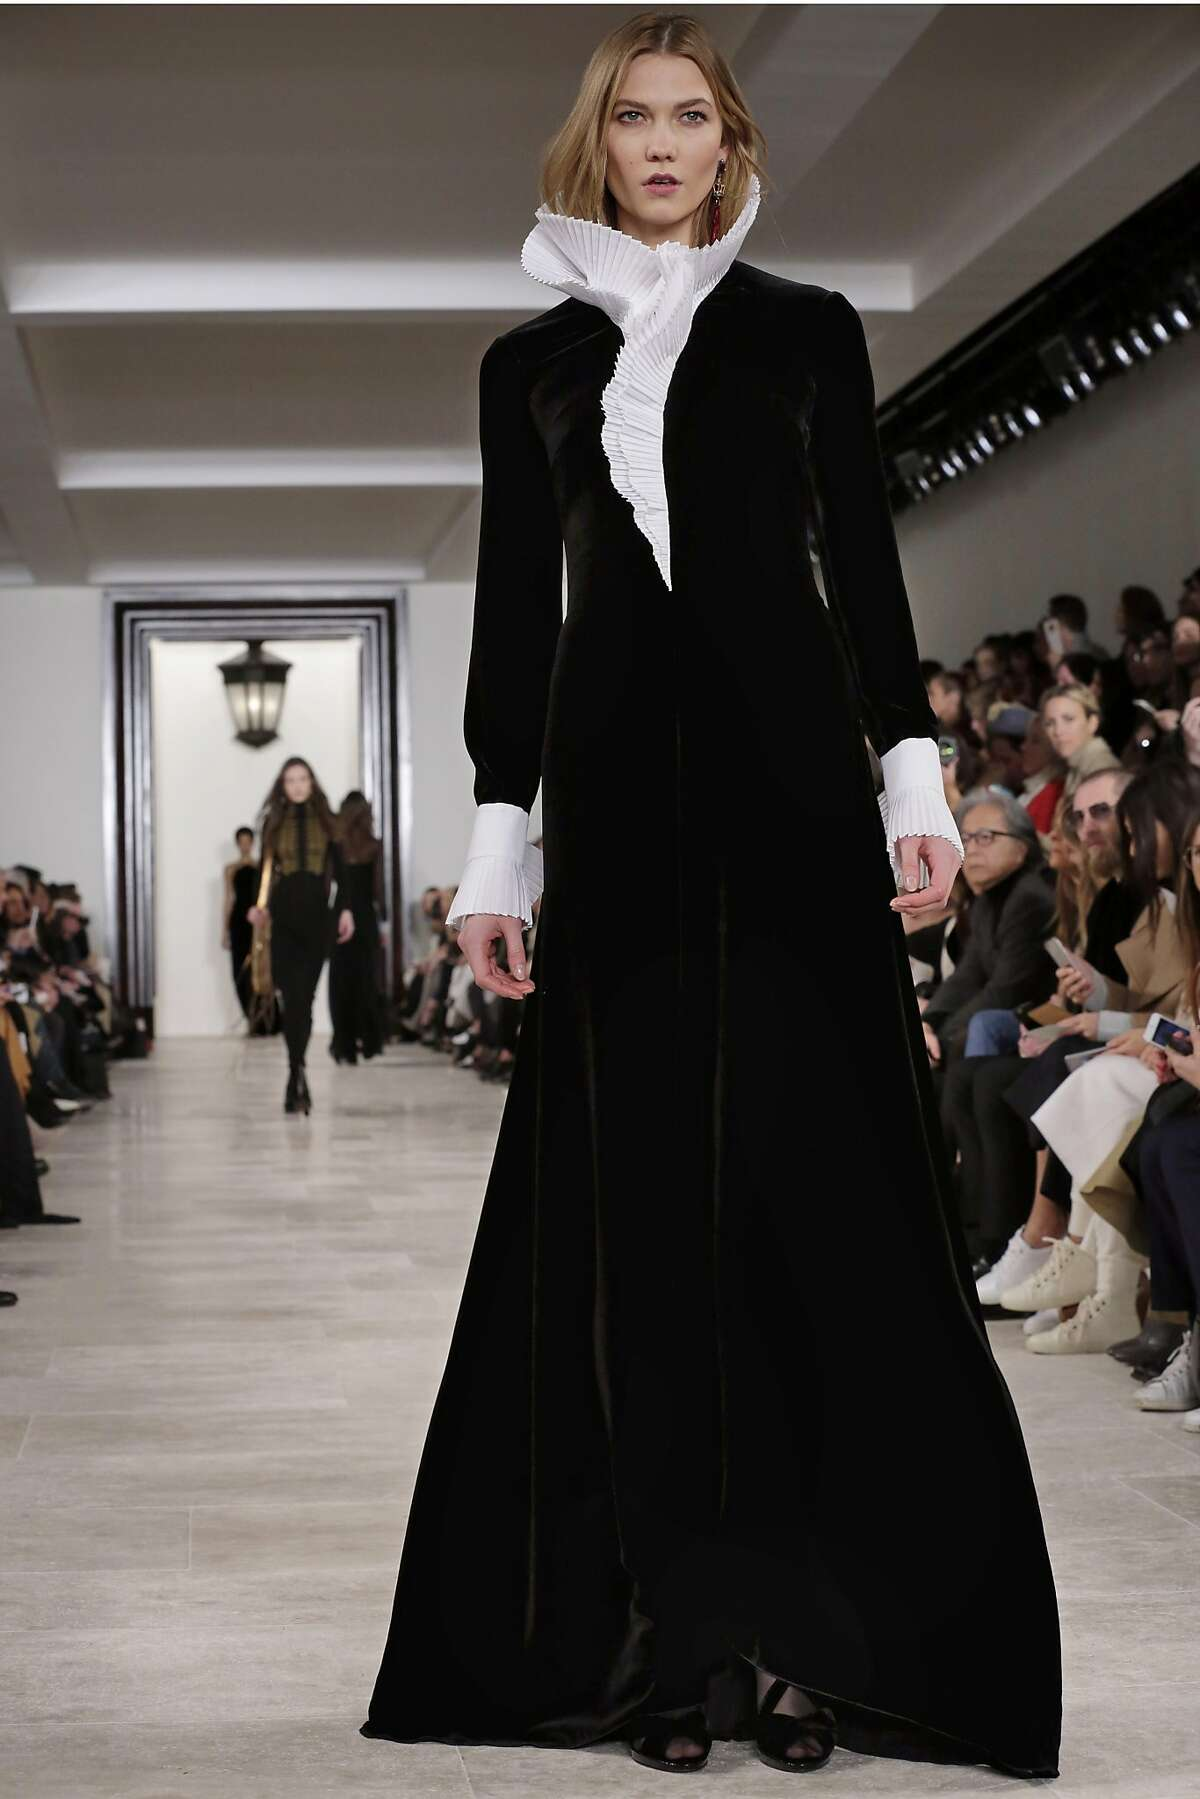 Model Karlie Kloss walks the runway in the Ralph Lauren Fall 2016 collection during Fashion Week in New York, Thursday, Feb. 18, 2016. (AP Photo/Richard Drew)